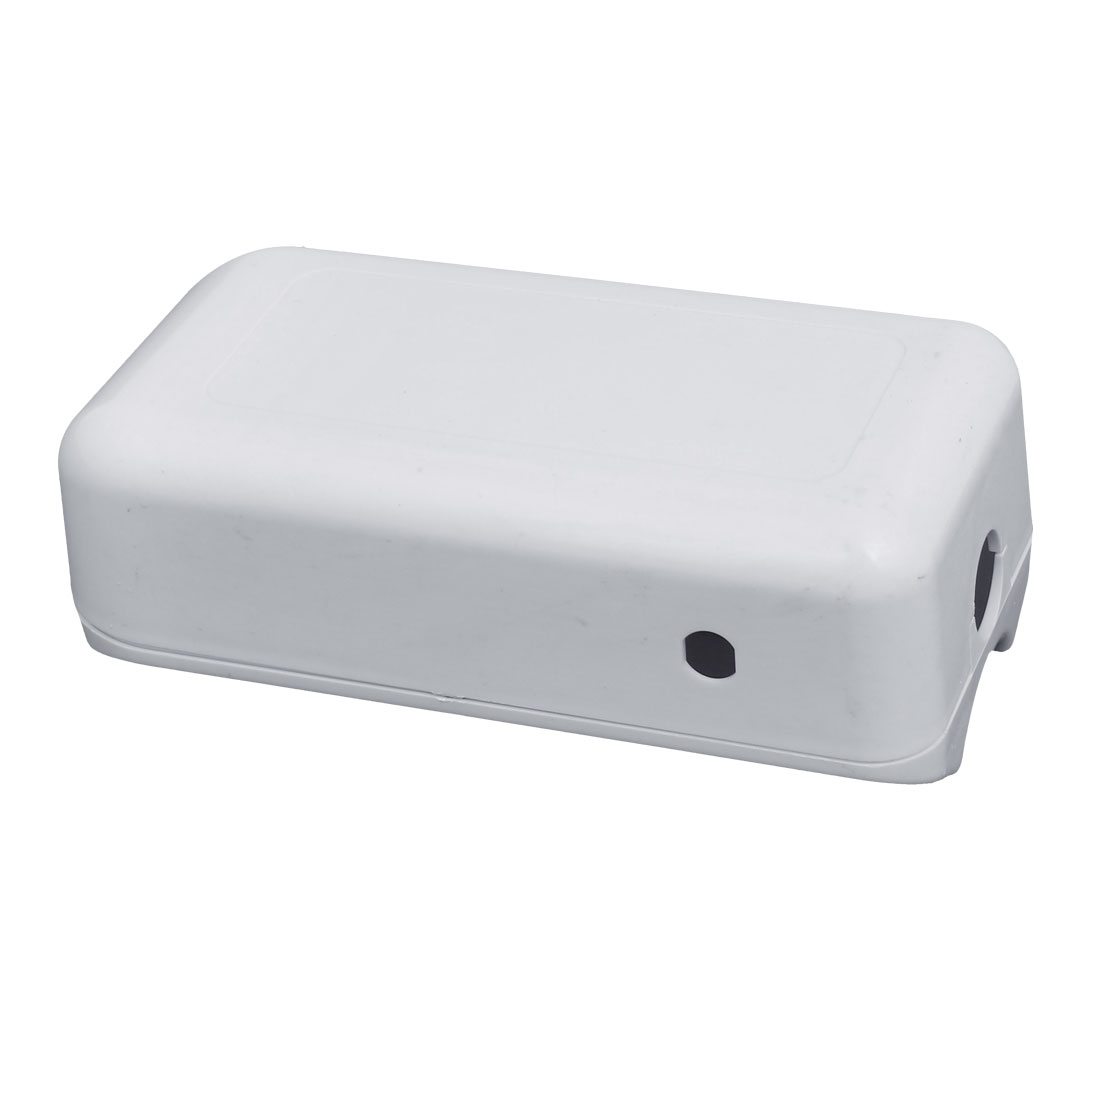 195mmx90mmx70mm Plastic Lithium Battery Control Box Holder for Electric Scooter